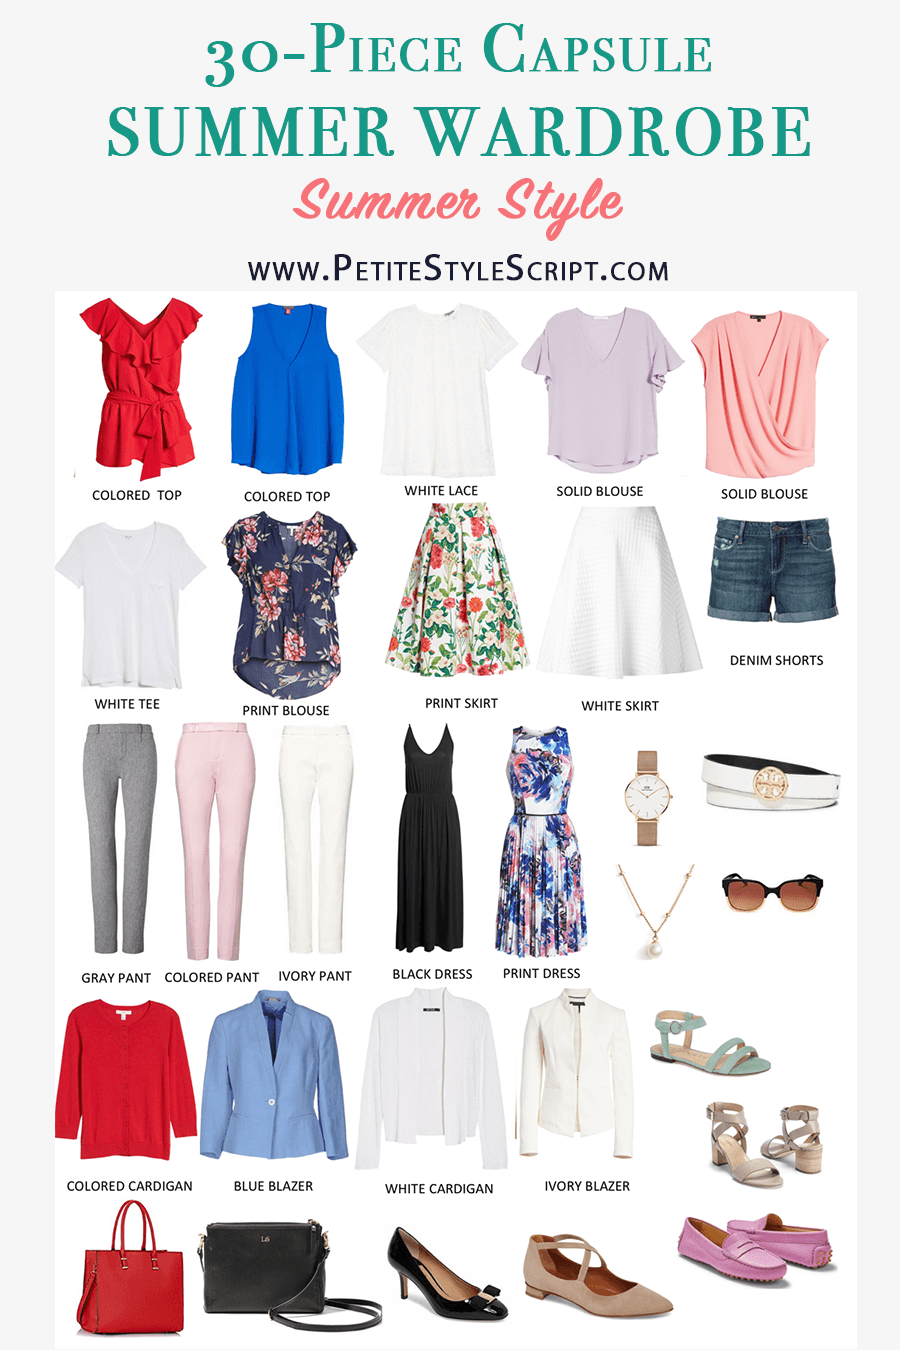 Summer Capsule Wardrobe Challenge | Project 333 | minimalist wardrobe | petite fashion and style blog | KonMari philosophy method | less is more | summer top outfits | spark joy closet